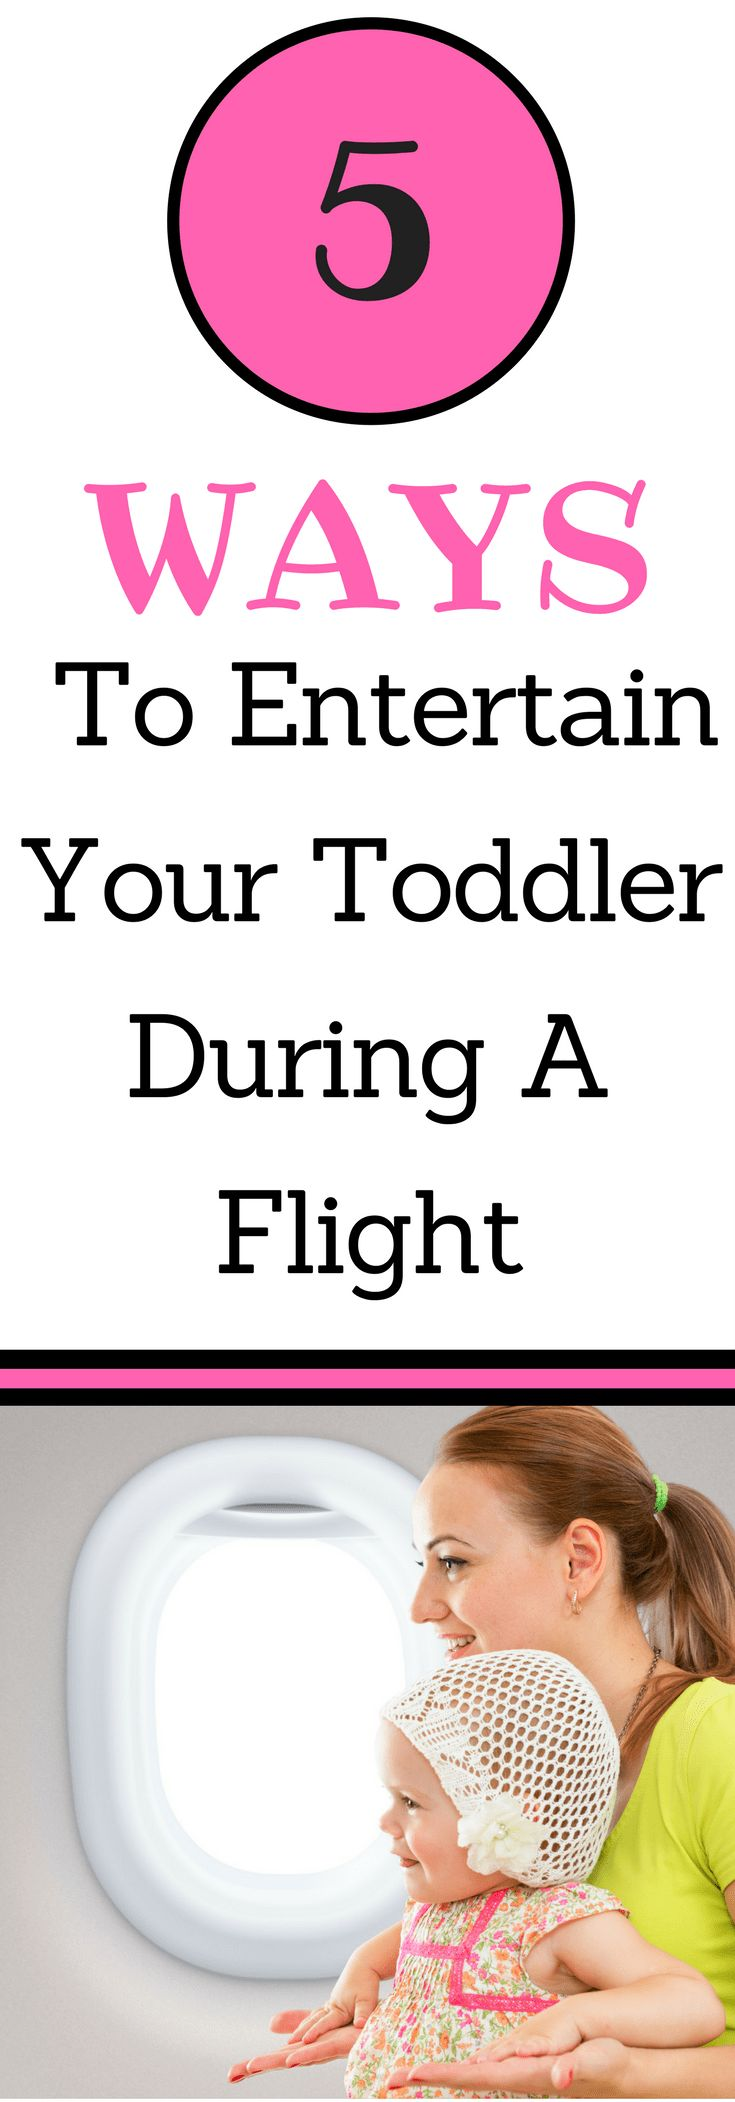 Are you looking for ways to have a stress free flight with your toddler? Use these simple and quick activities to entertain your toddler during any flight!